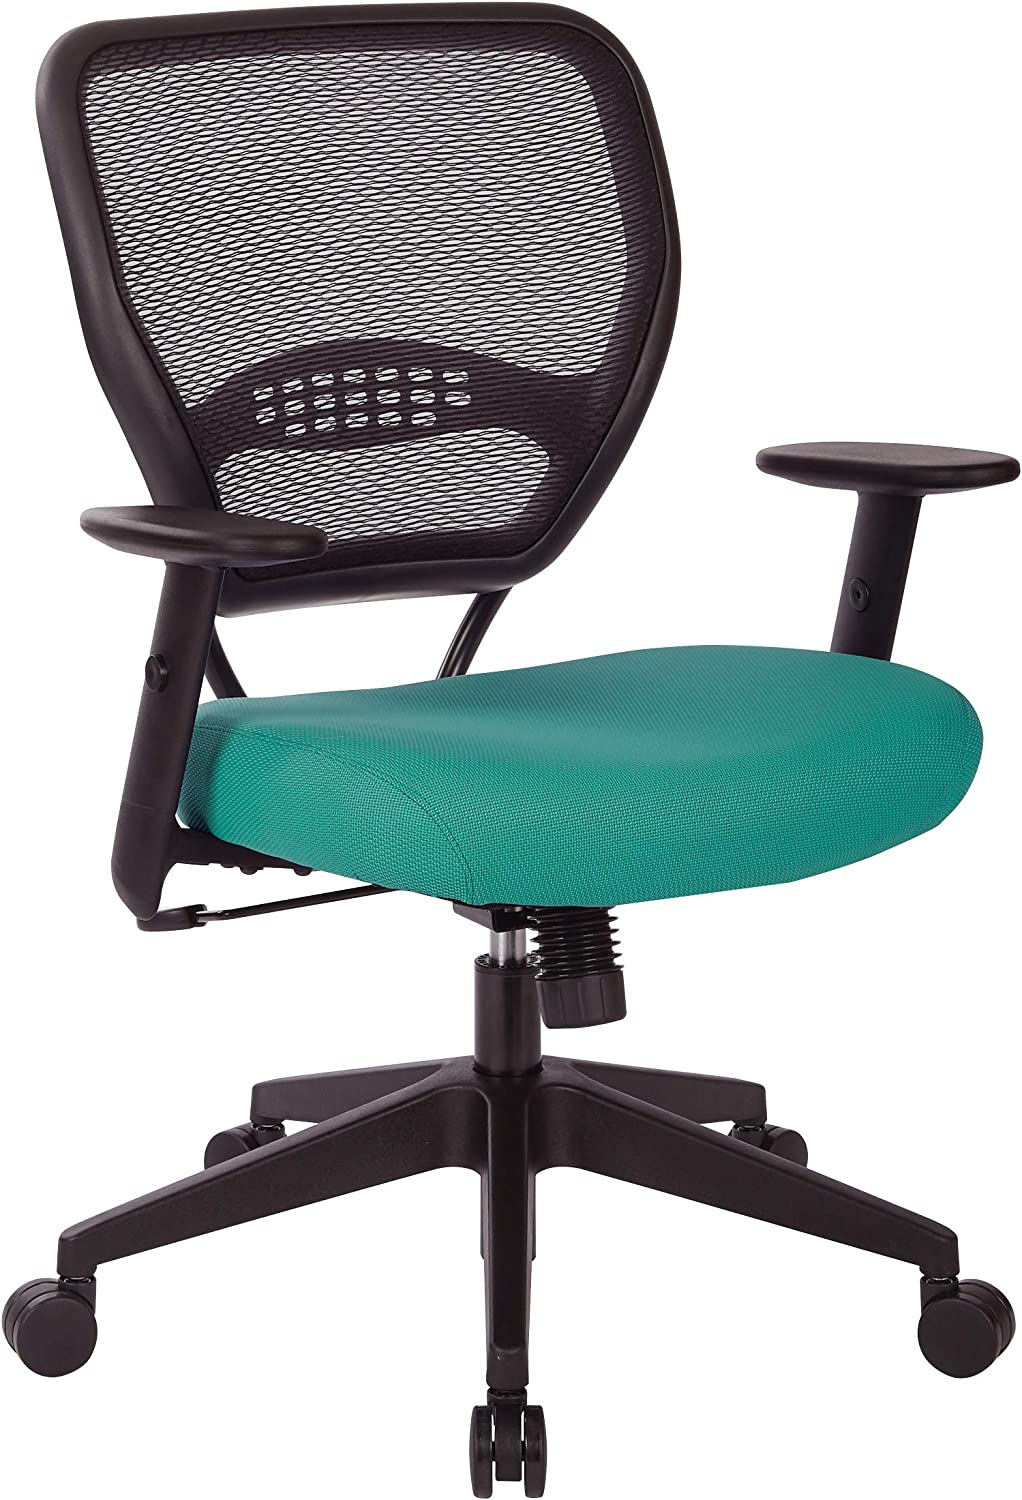 Office Star 55 Series Professional Dark Air Grid Back Office Desk Chair with Built-in Lumbar Support, Tilt Control, Adjustable Height and Arms, Jade Fabric